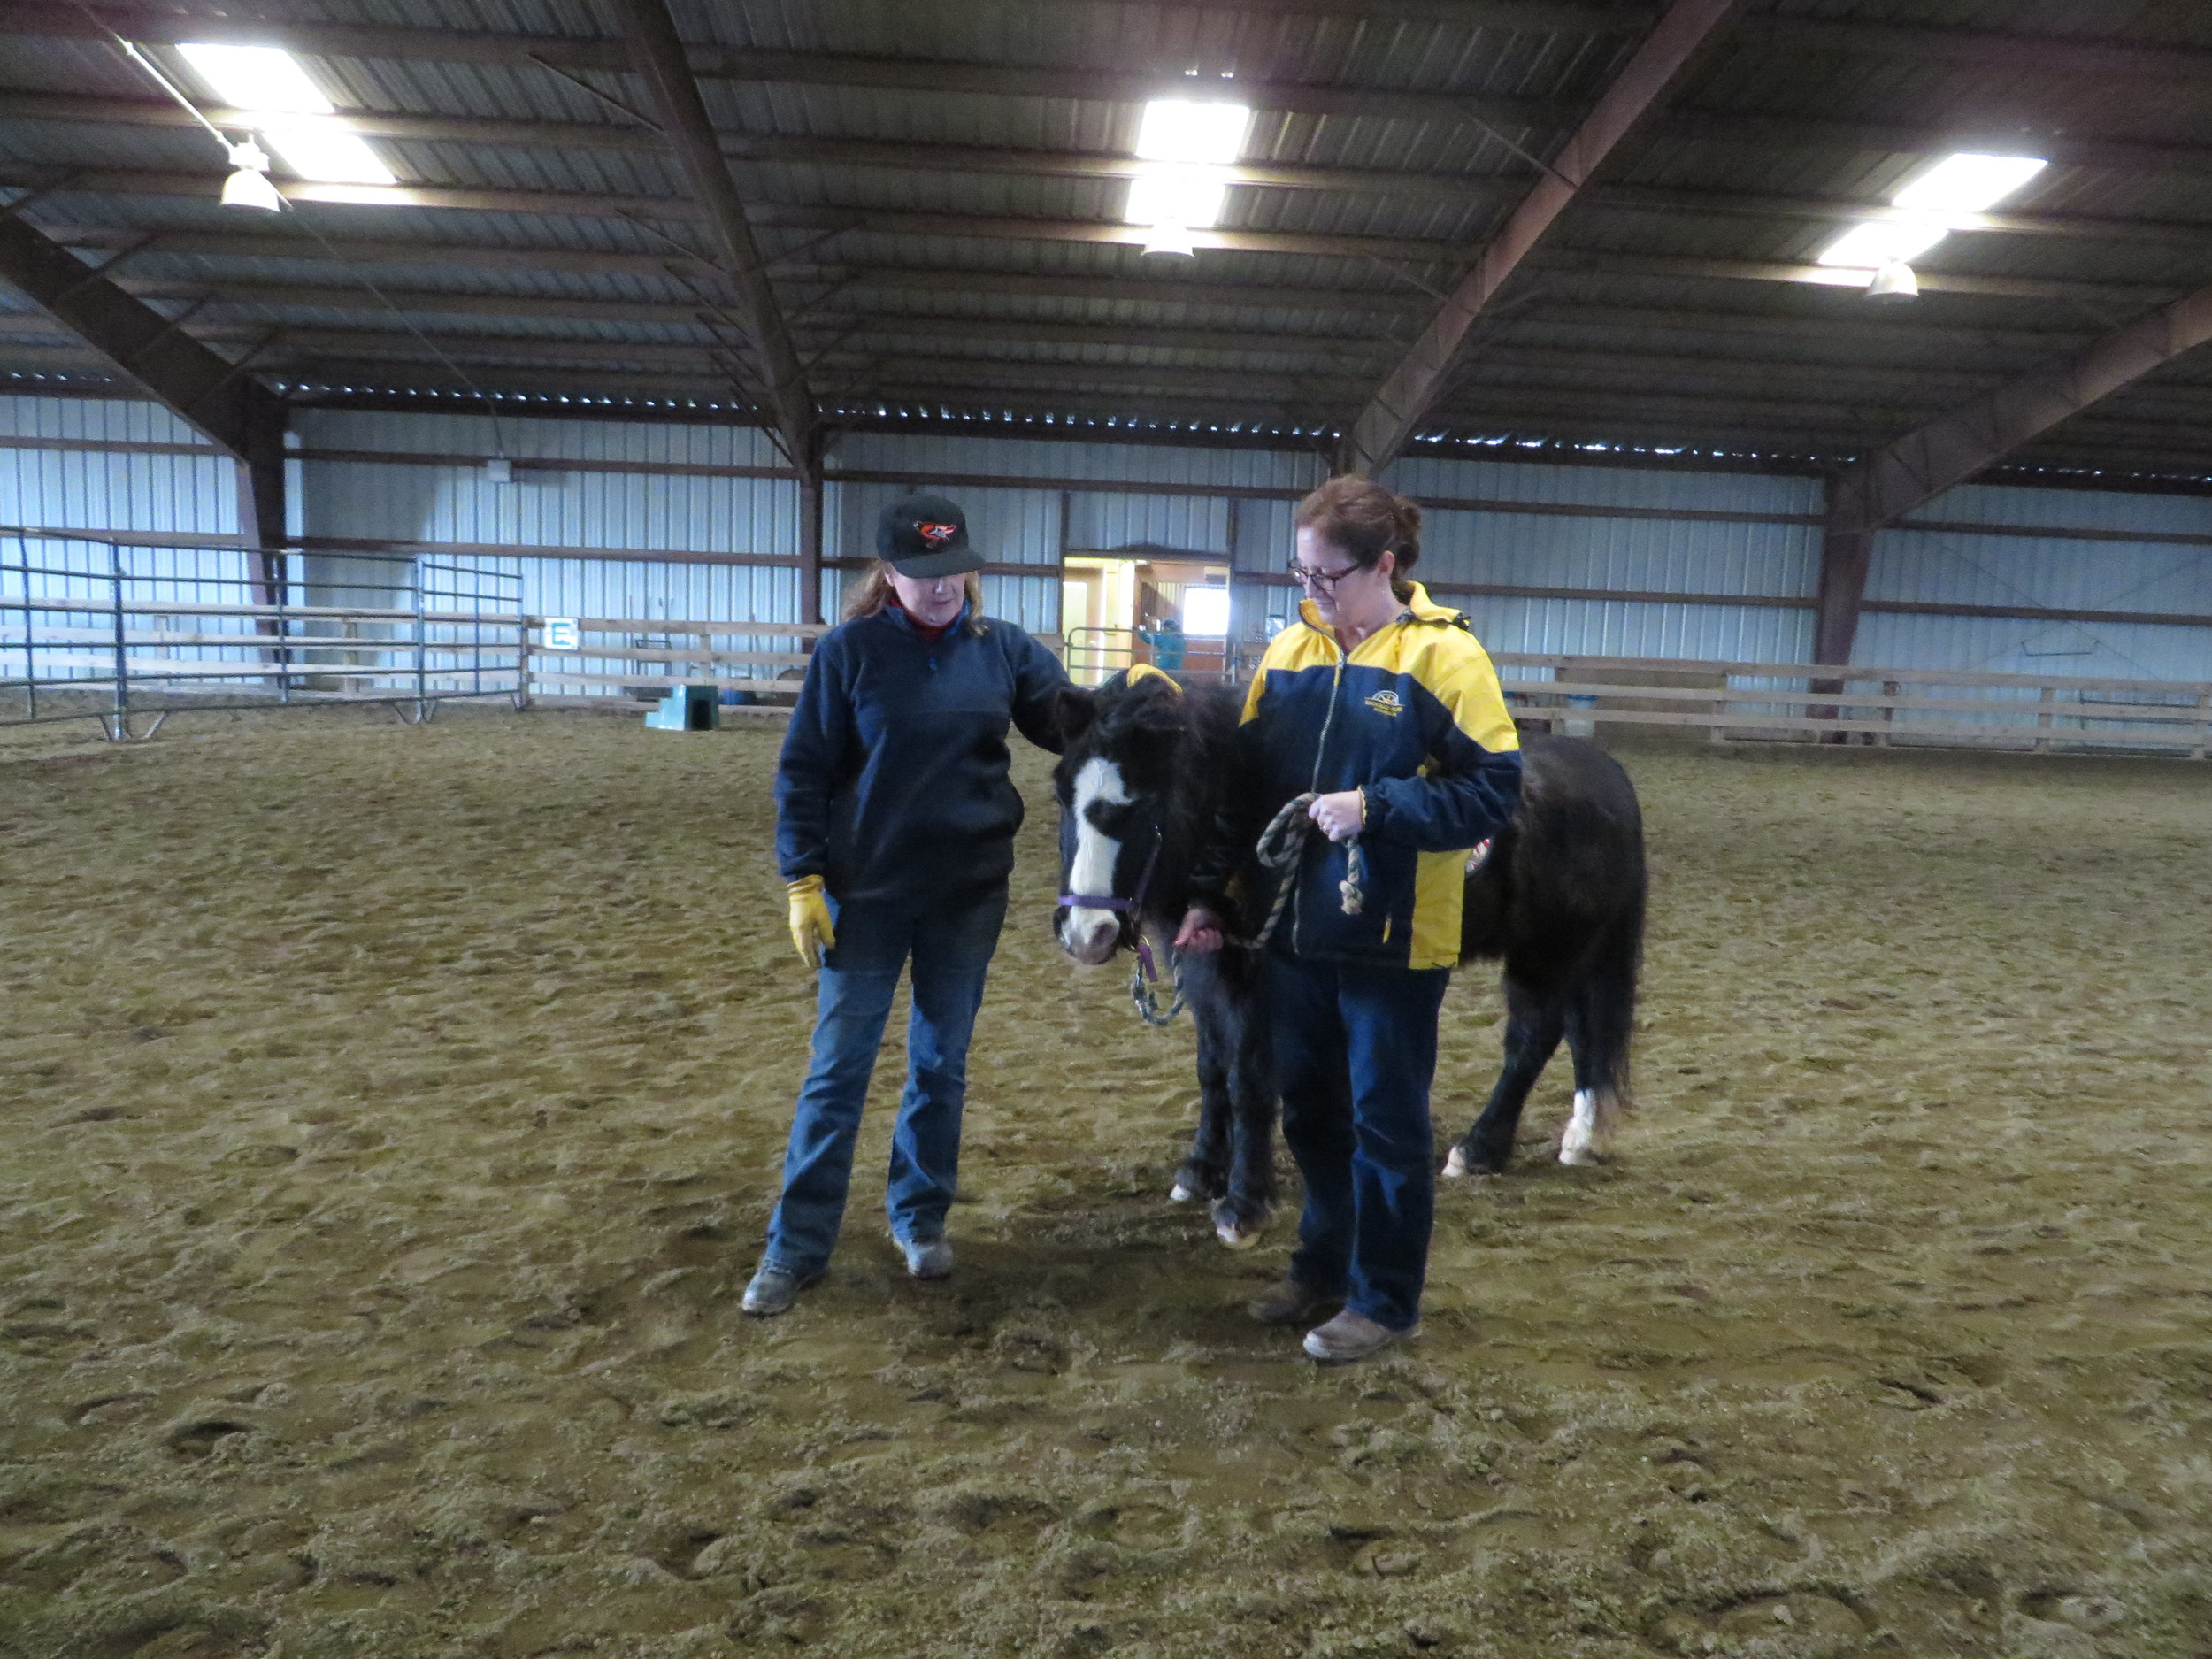 Duckie, a hippotherapy horse, is warmed up before a session